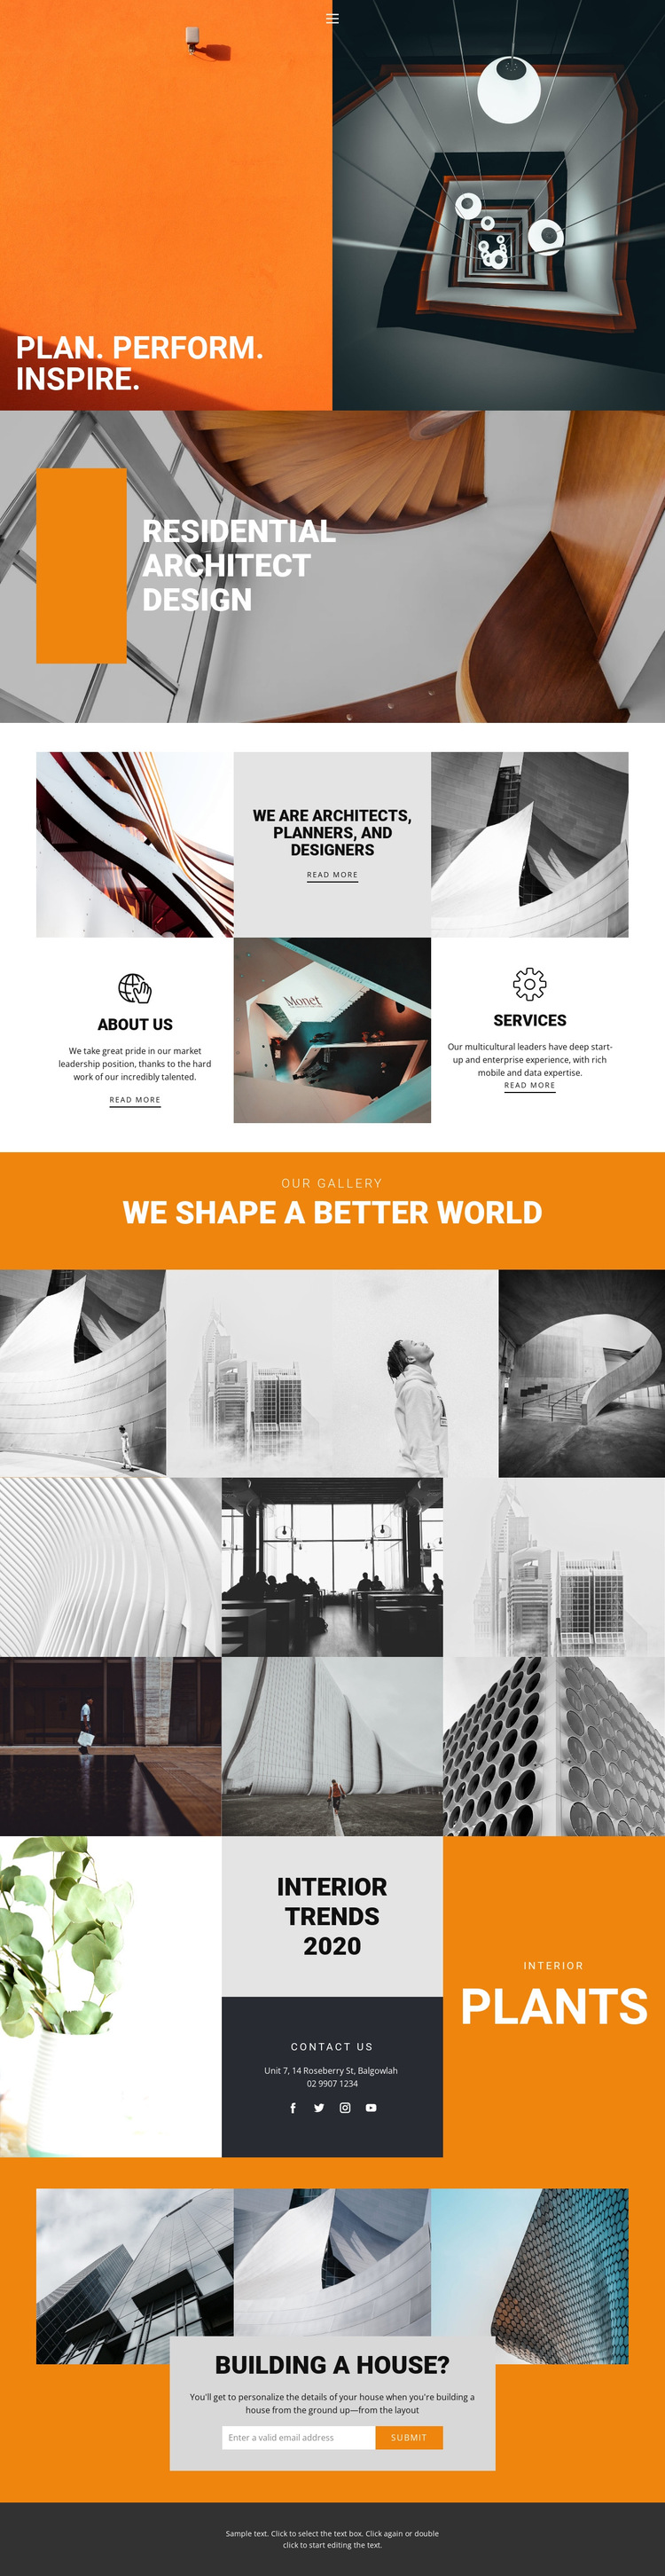 Inspiring ways of architecture HTML5 Template